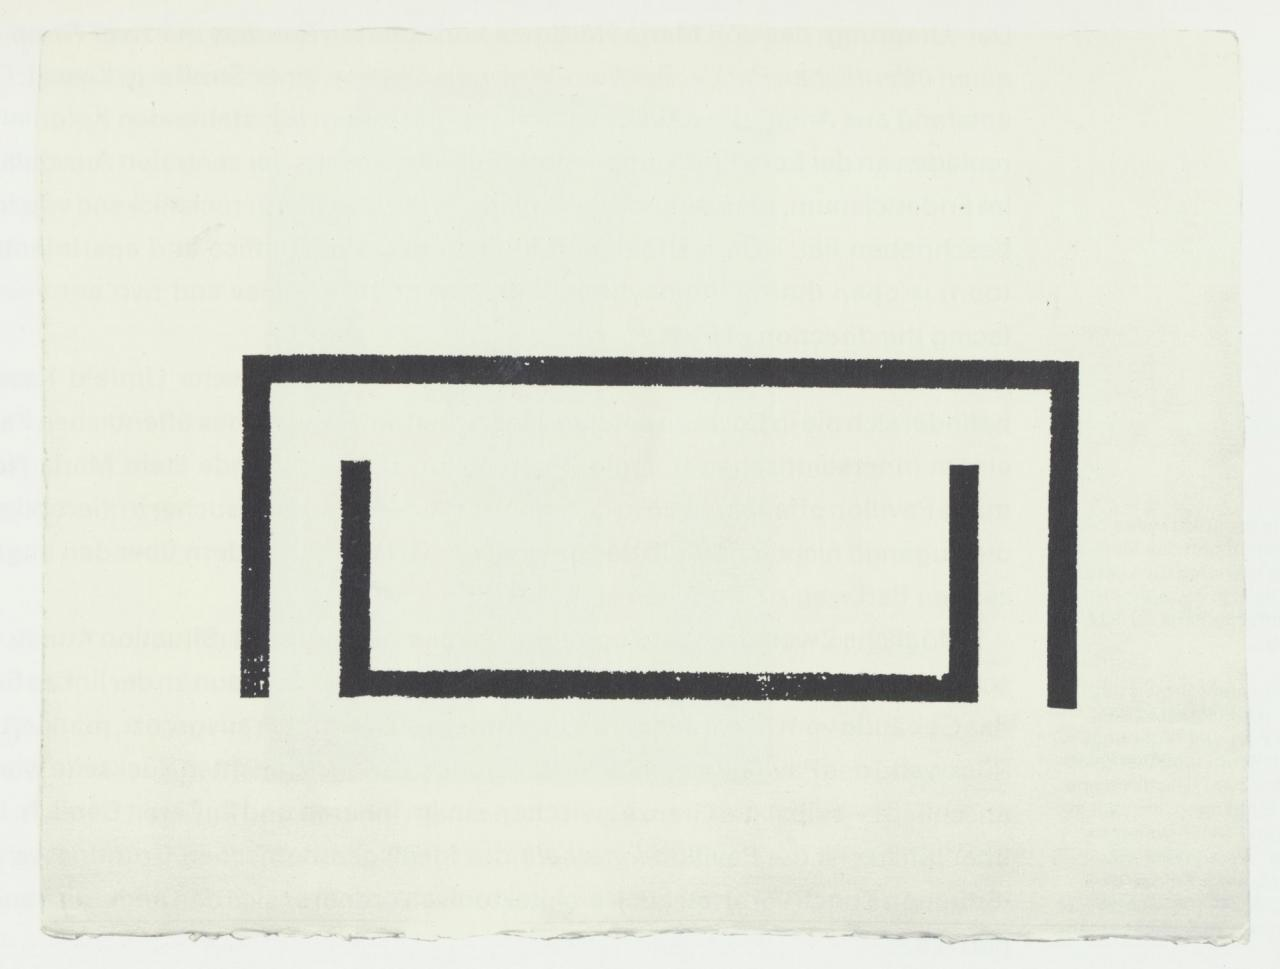 Above: Maria Nordman, For an Open Park (Bochum Plan) , 1985 Ink on paper, 58 x 77 cm © Maria Nordman & Situation Kunst; Collection Ruhr-University; Bochum